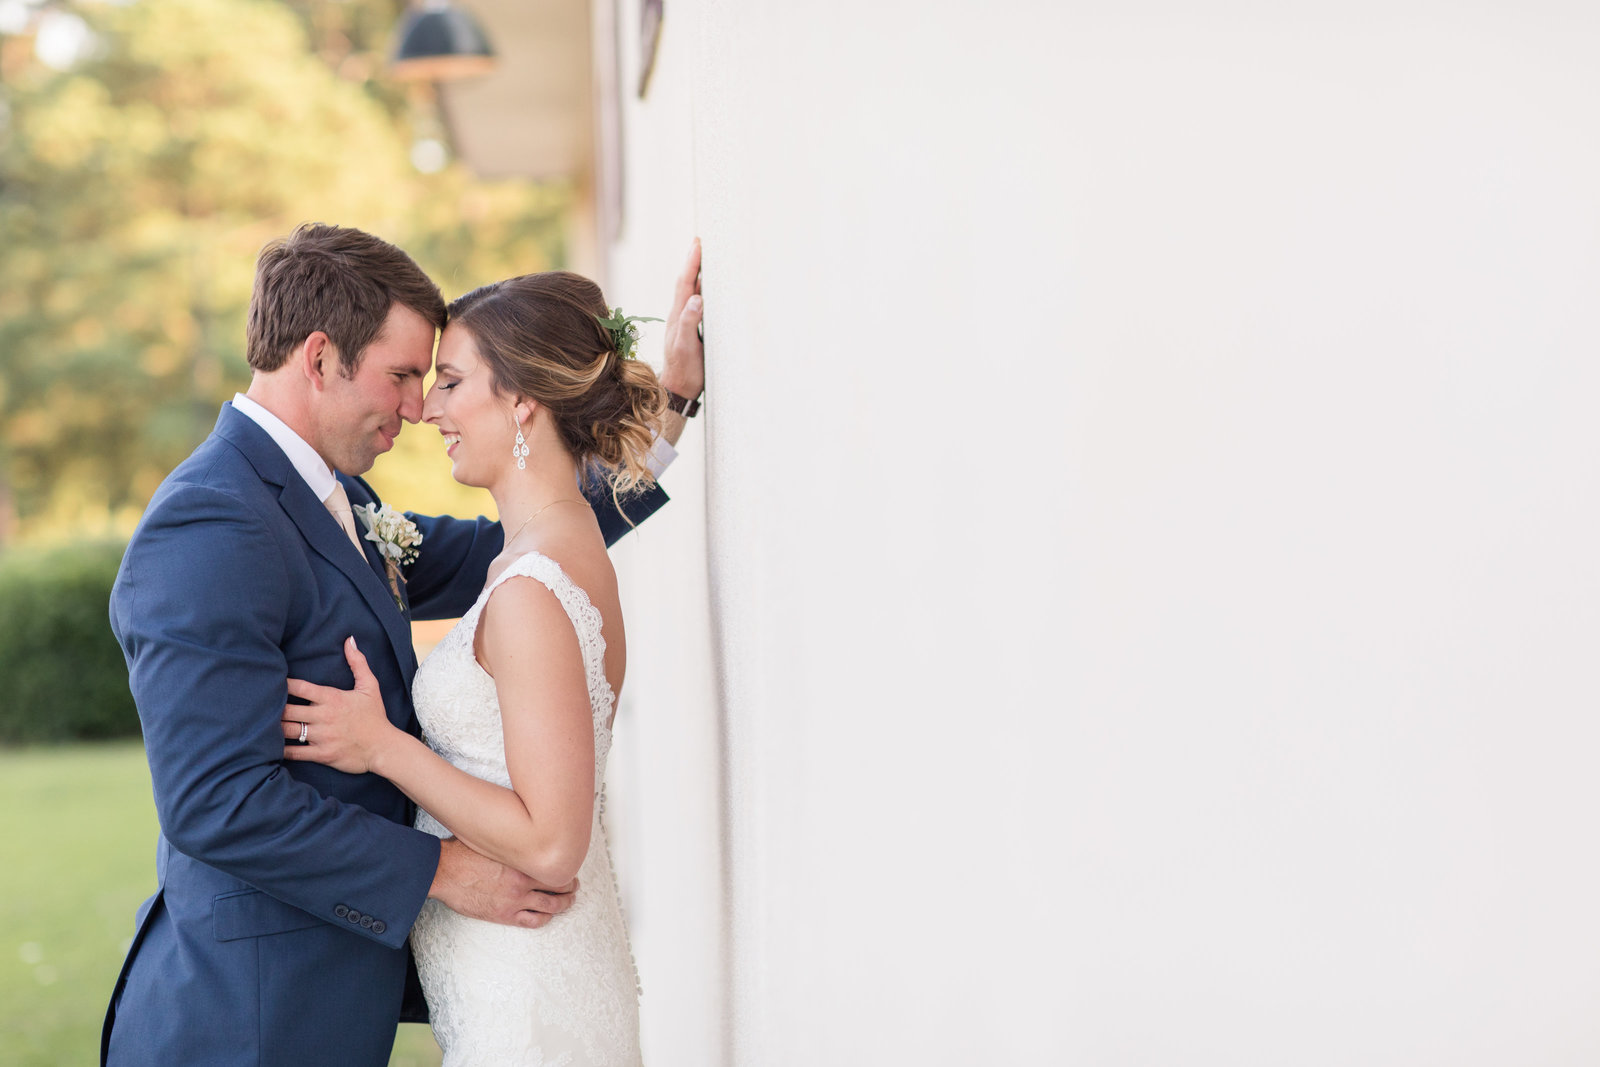 Beautiful wedding-First Look-Fair Barn Wedding, Pinehurst NC